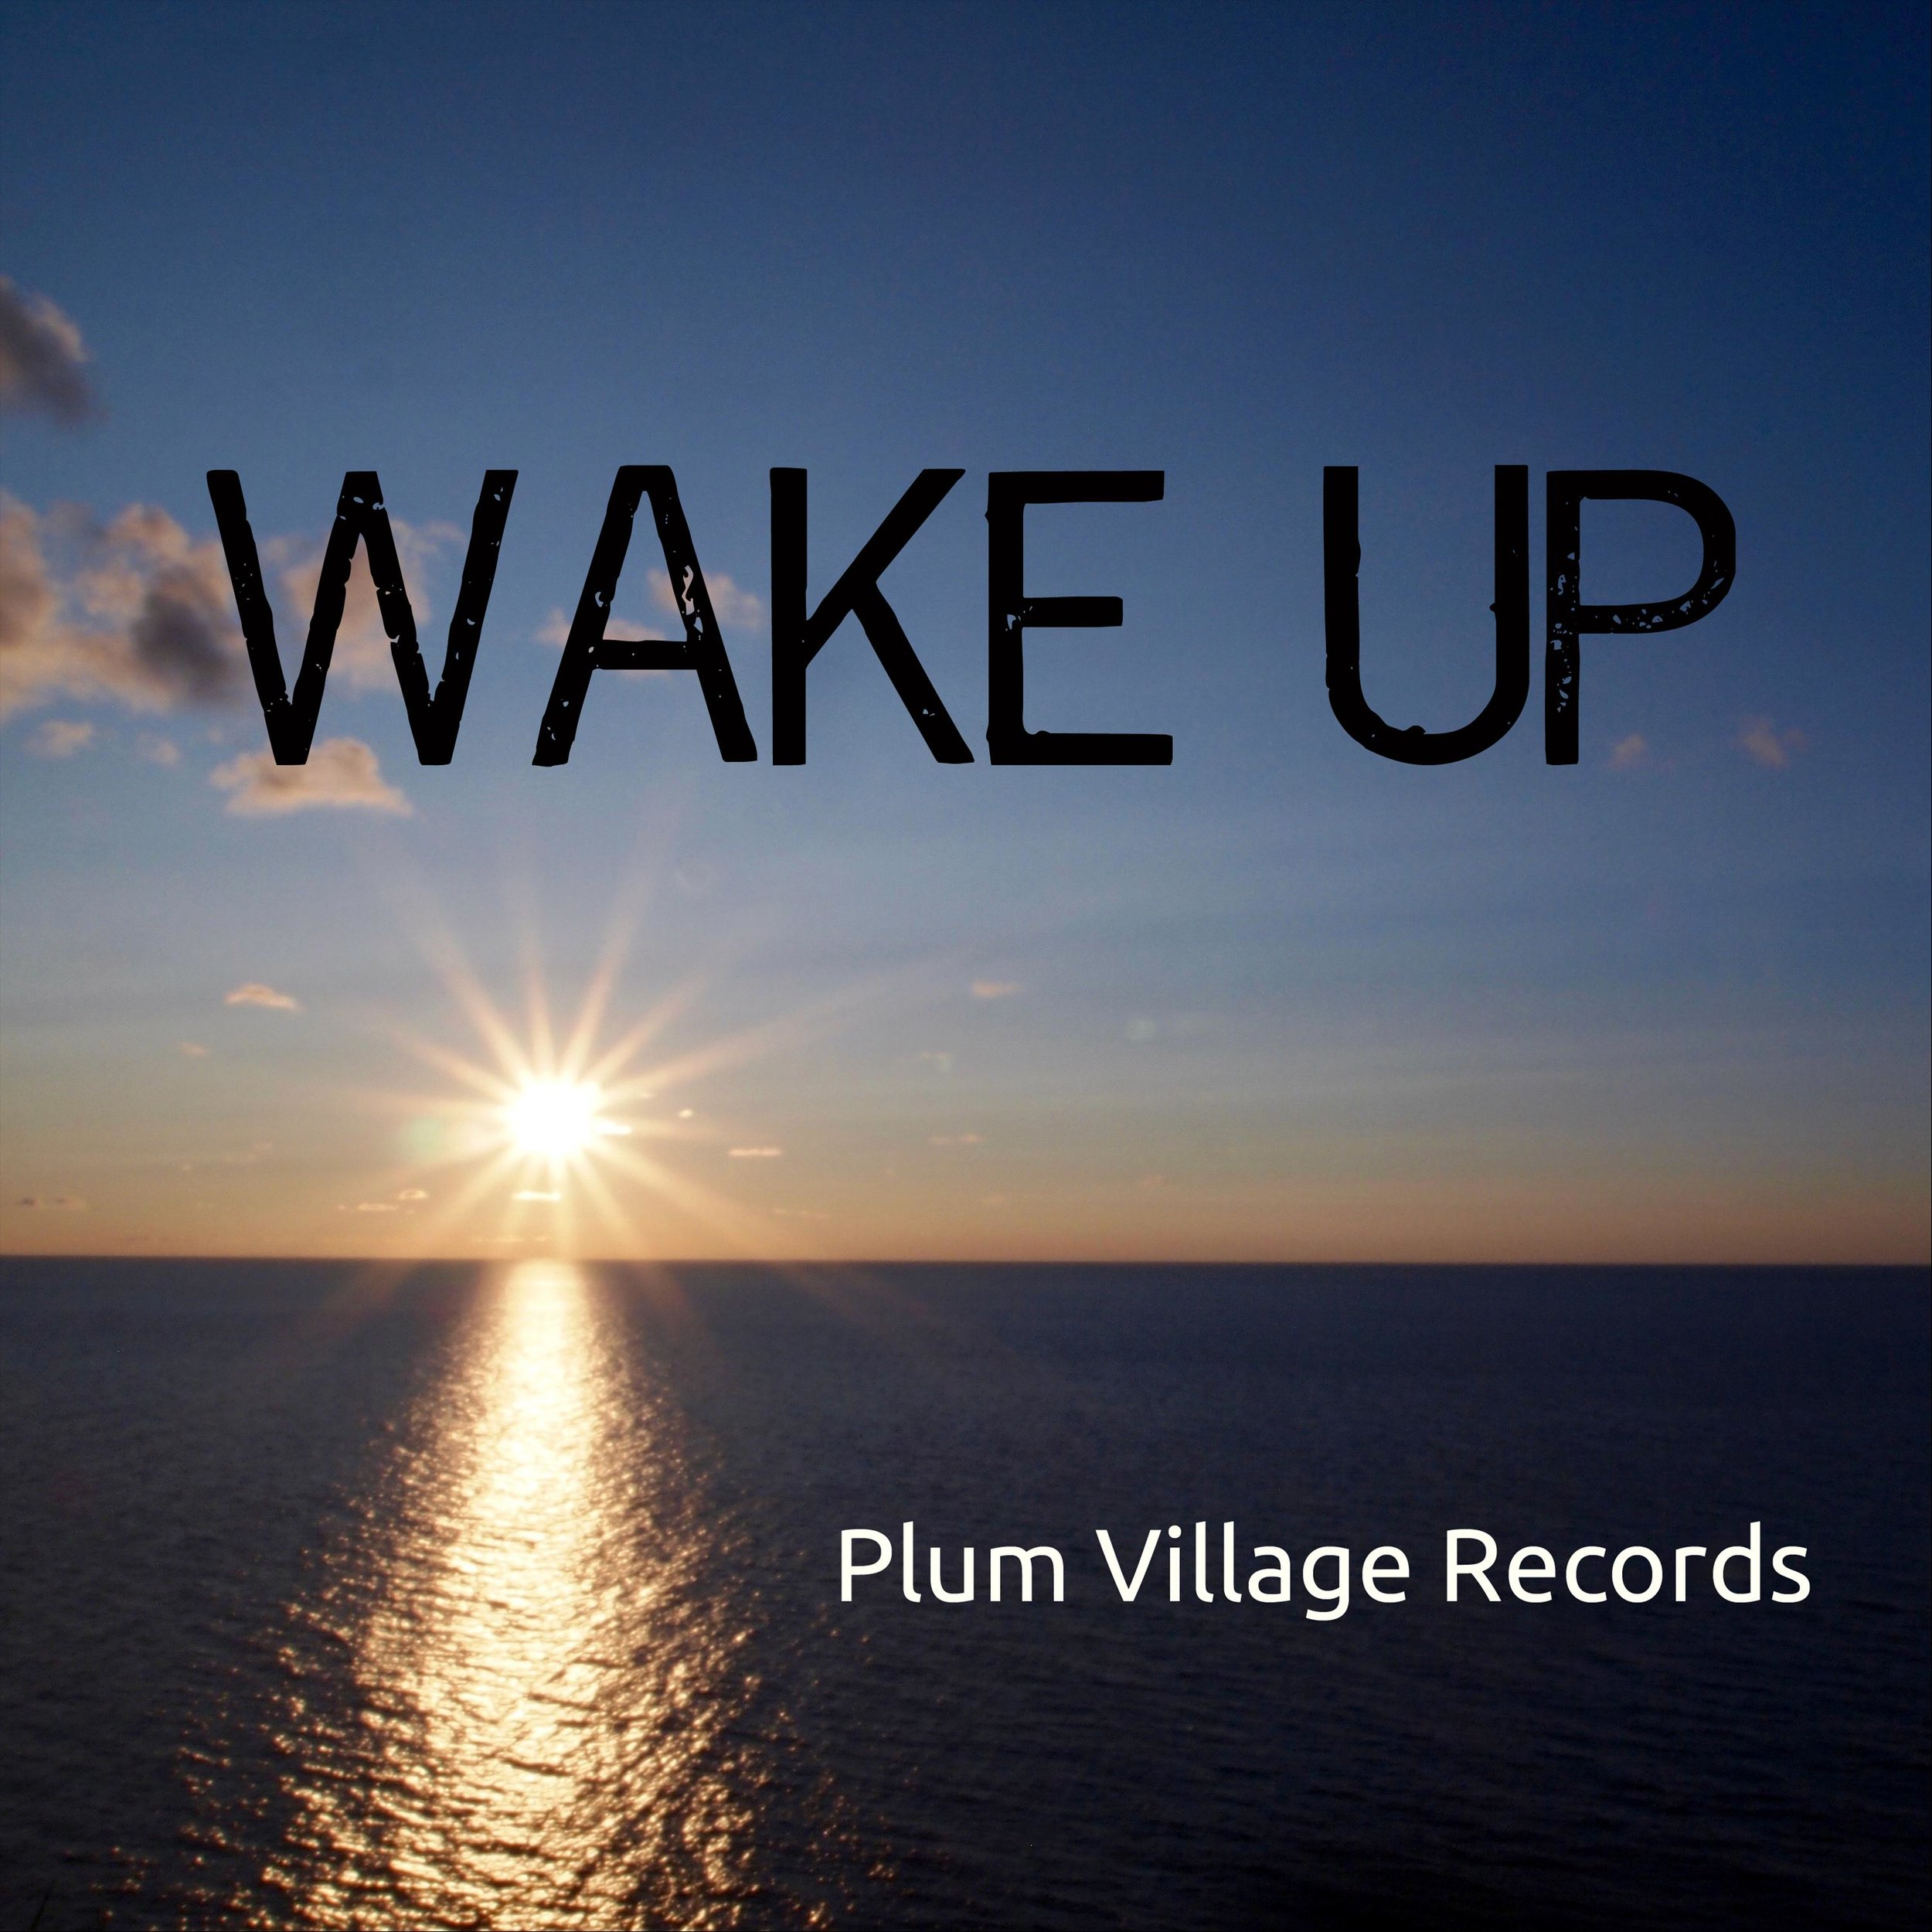 """Wake Up - Wake Up is a collection of songs inspired by the 2011 Wake Up Tour in the US. Titles include """"Unborn and Indestructible,"""" """"This Is It!"""","""